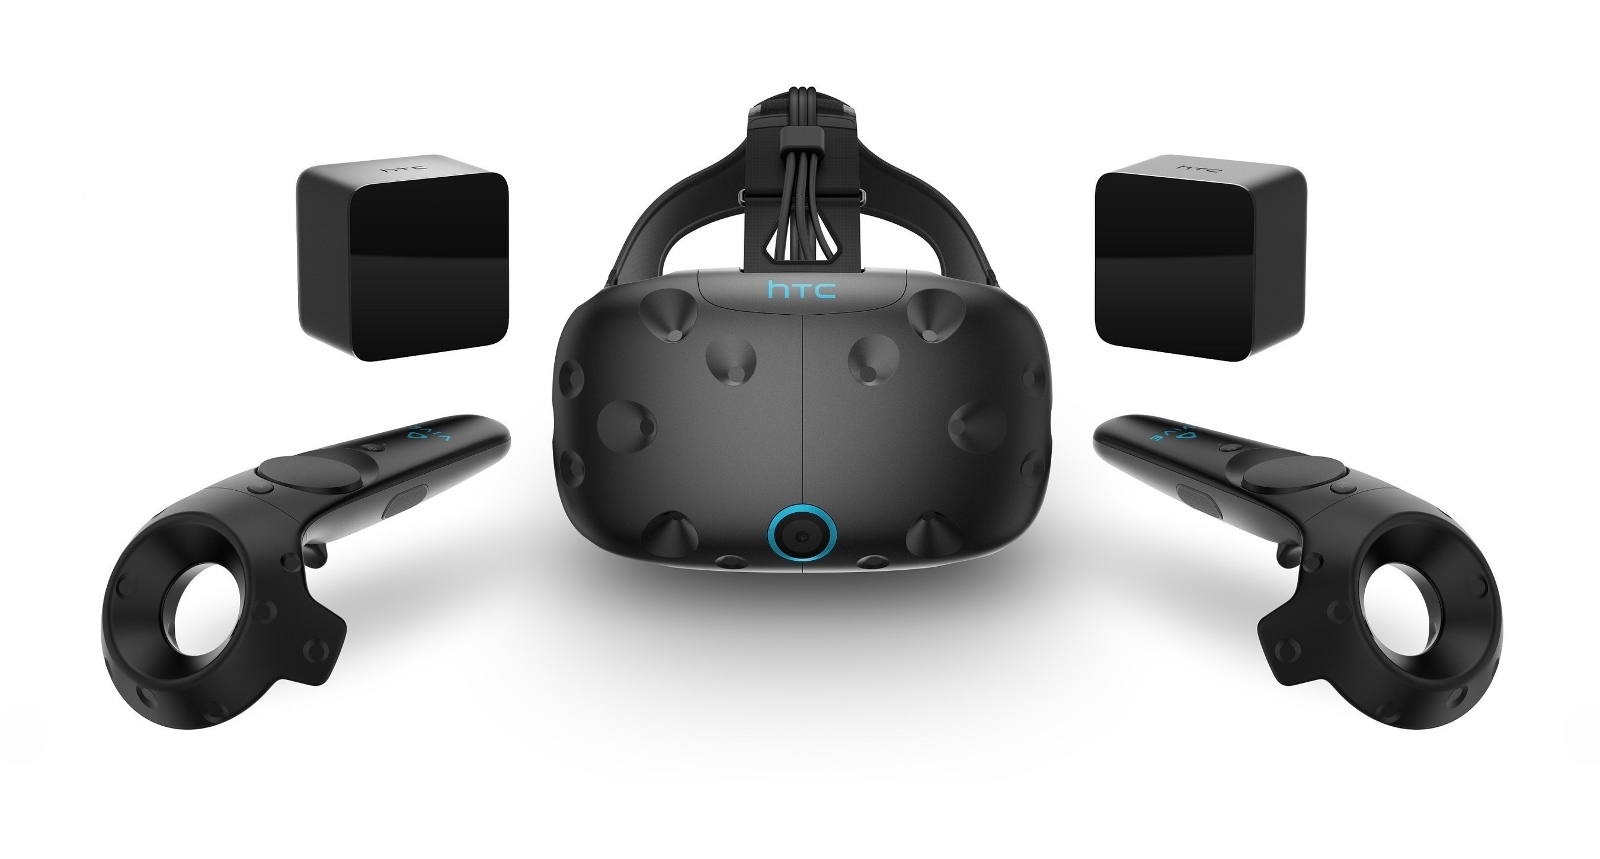 HTC kündigt Business Edition seines Virtual-Reality-Systems Vive an